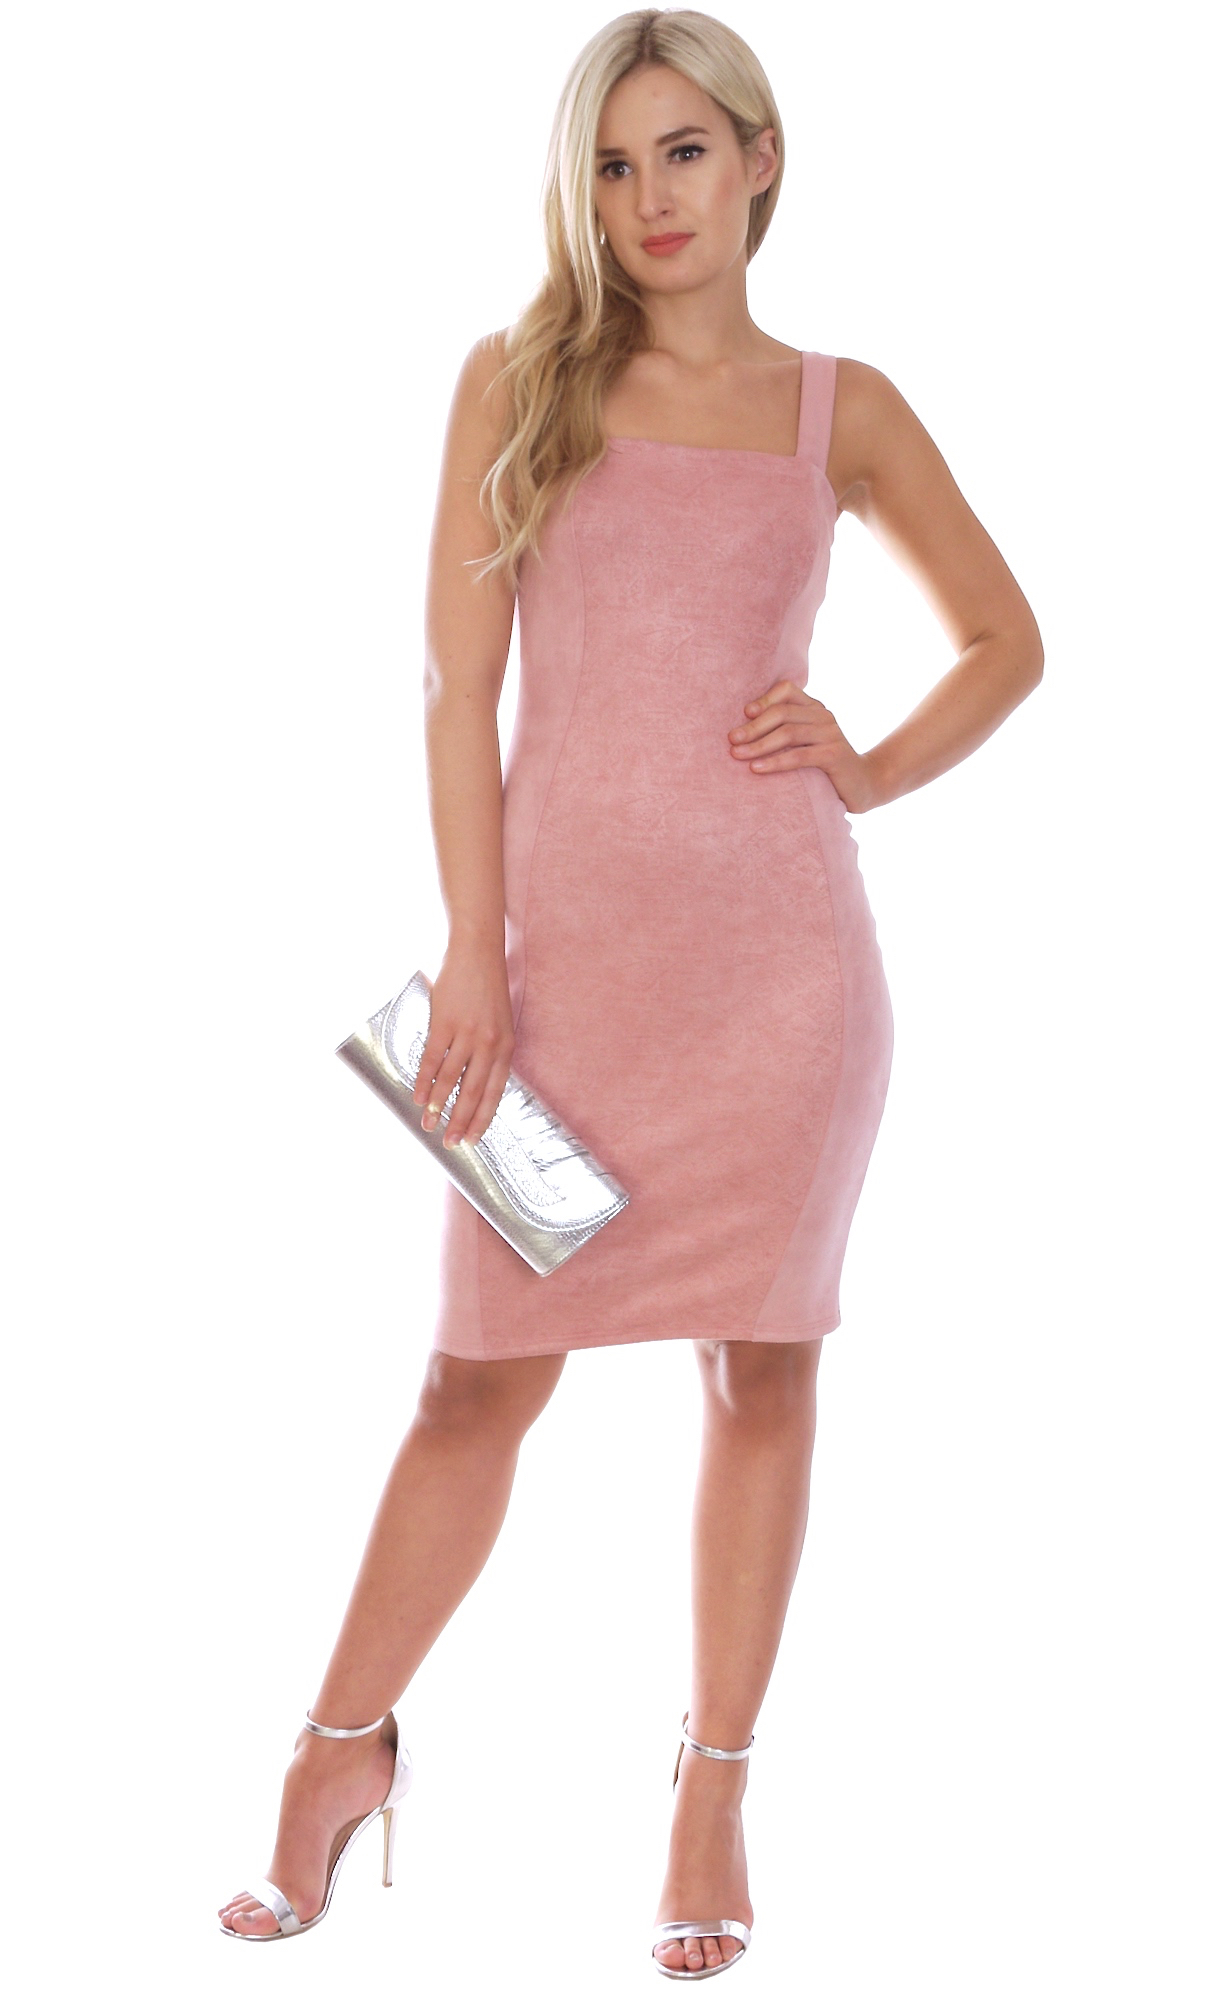 Image for Summer Mini Dress Nude Pink